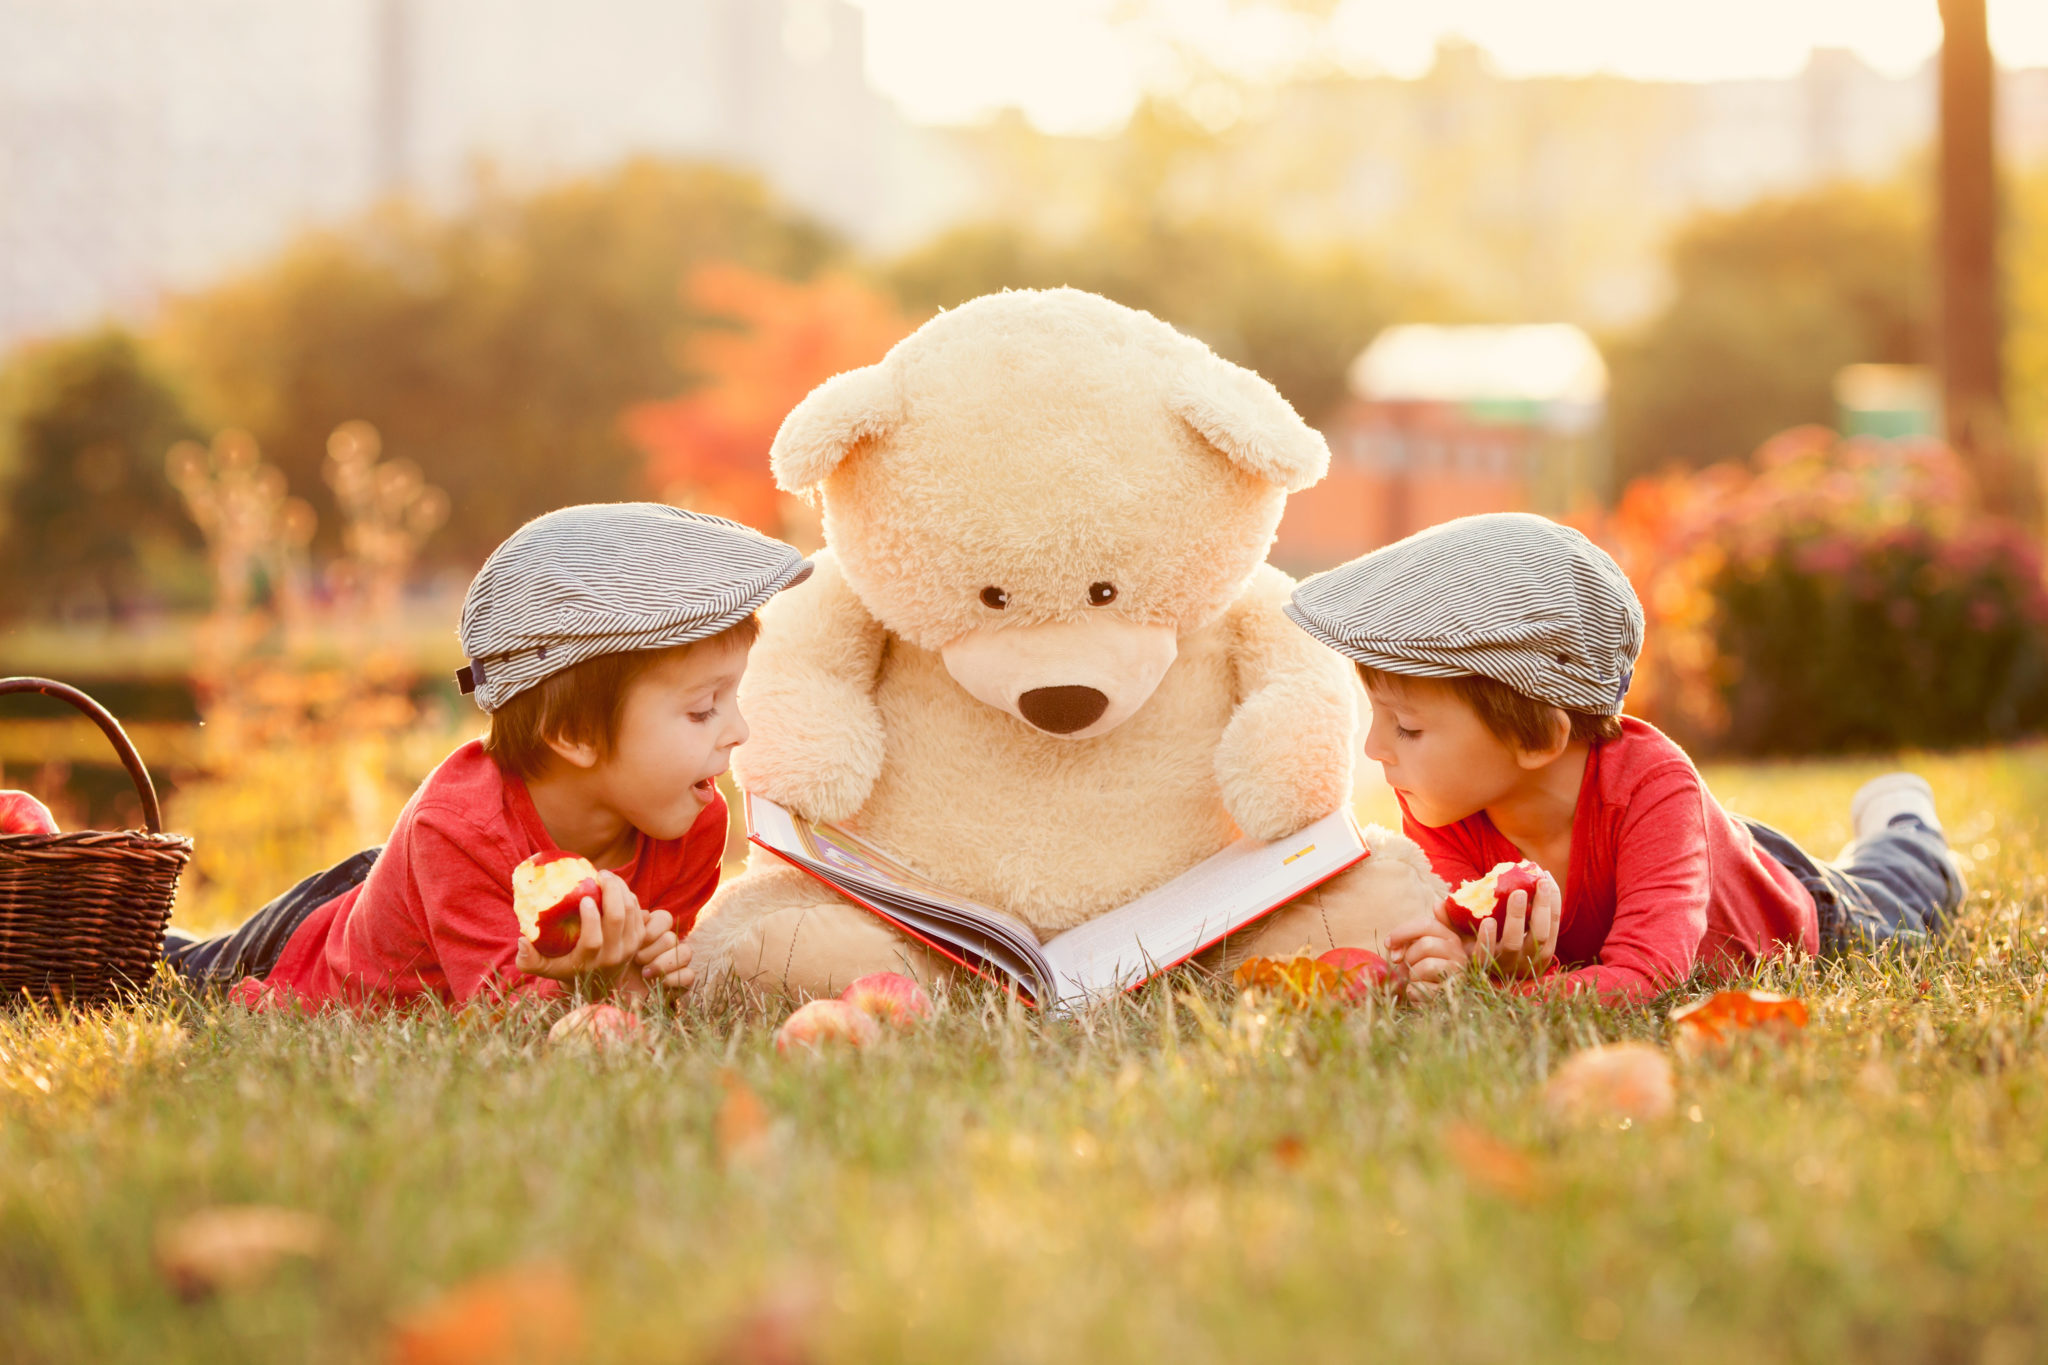 Two adorable little boys with his teddy bear friend in the park on sunset, nice back light